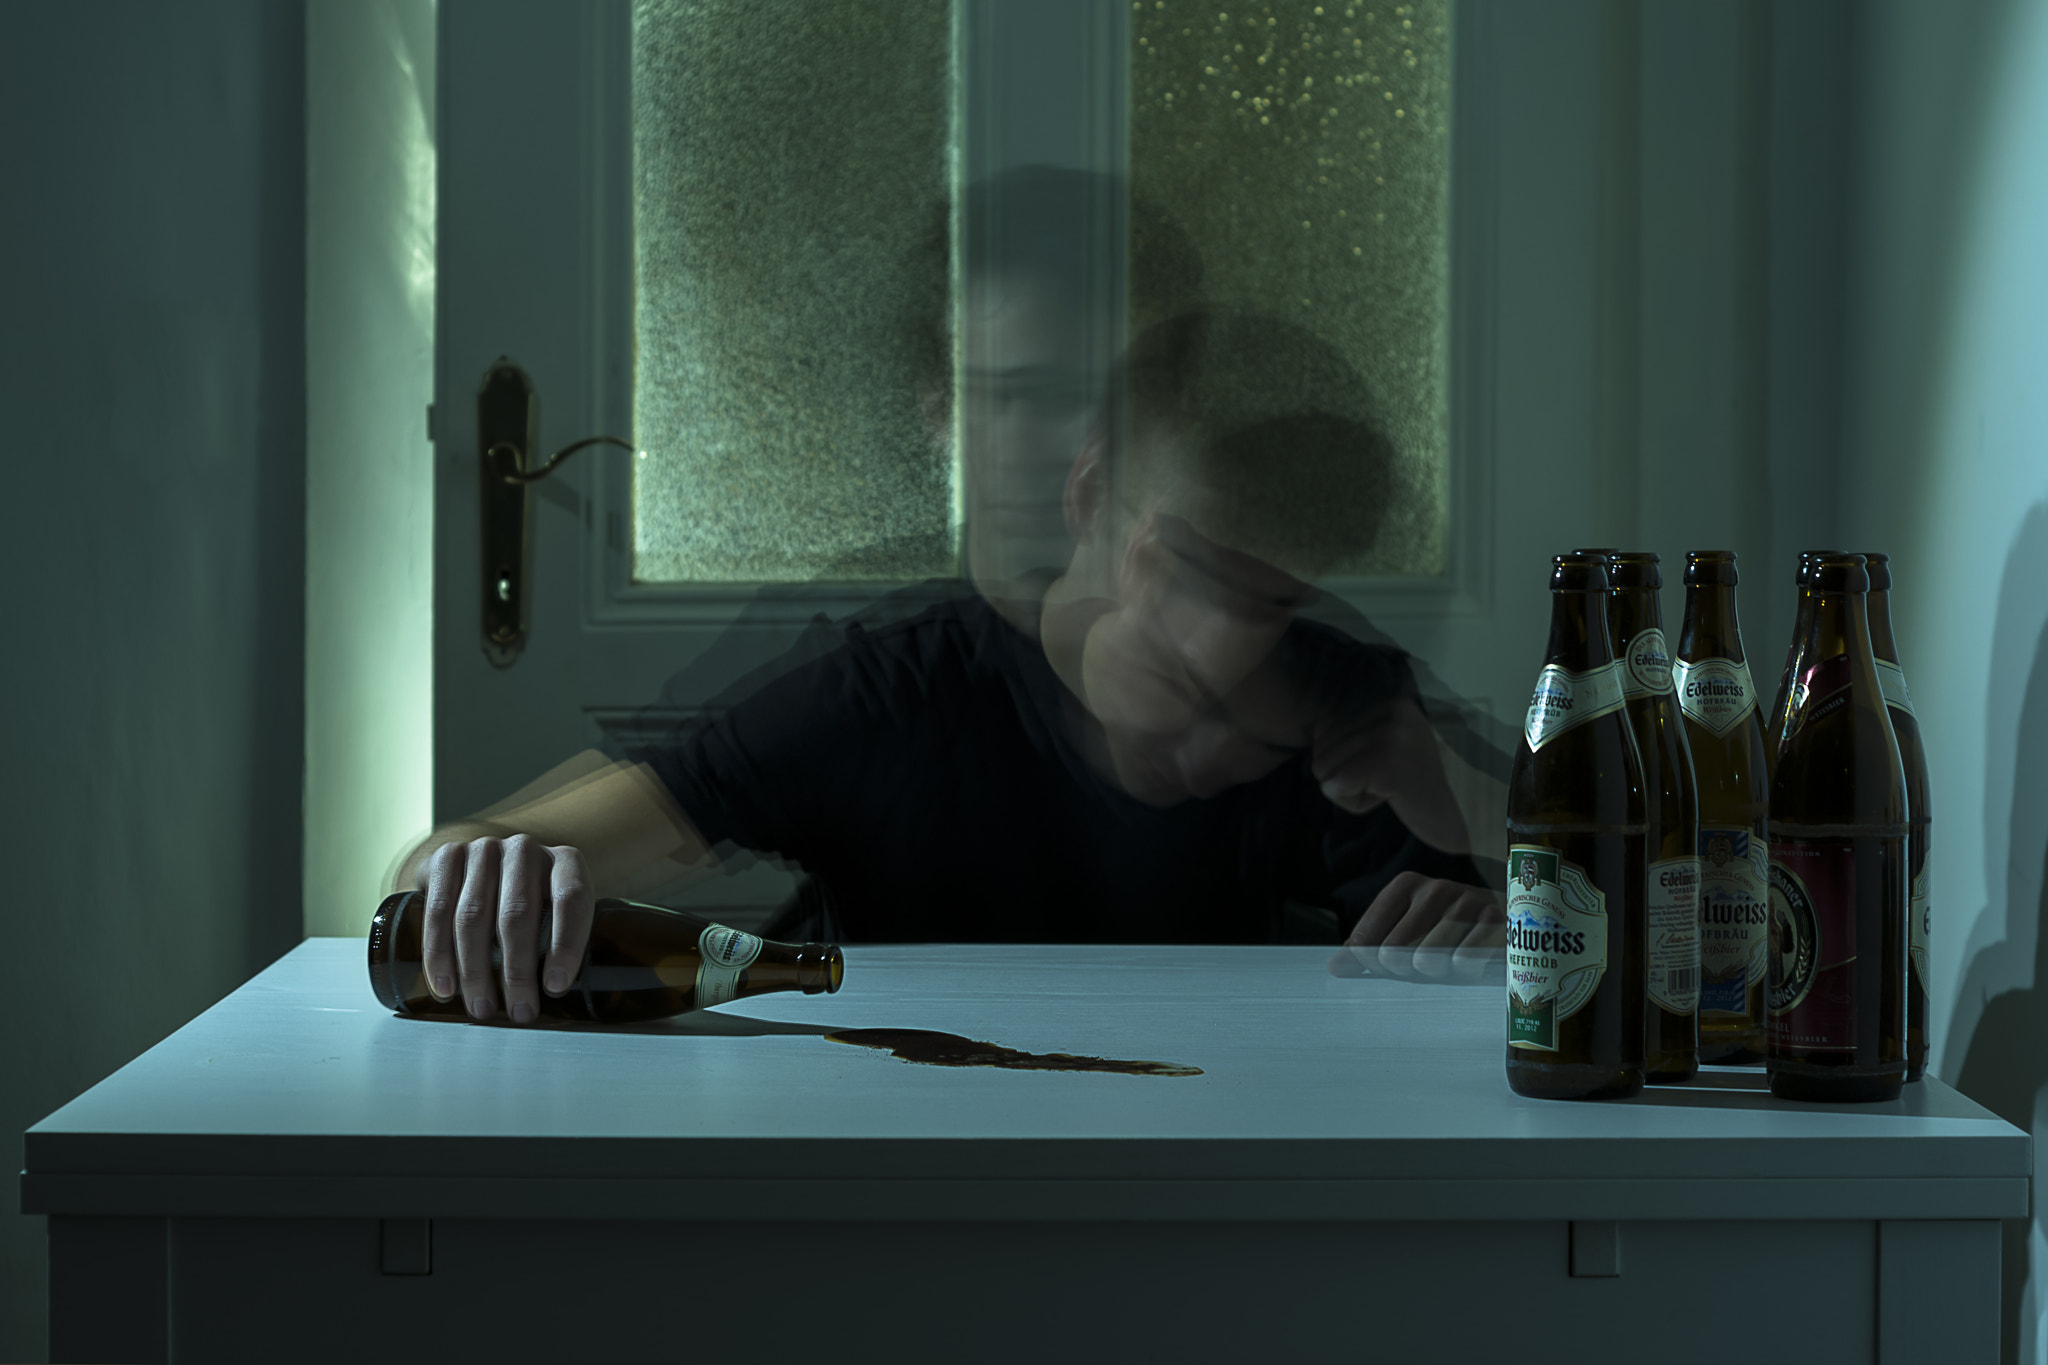 Photograph Beer by Luka Veren on 500px